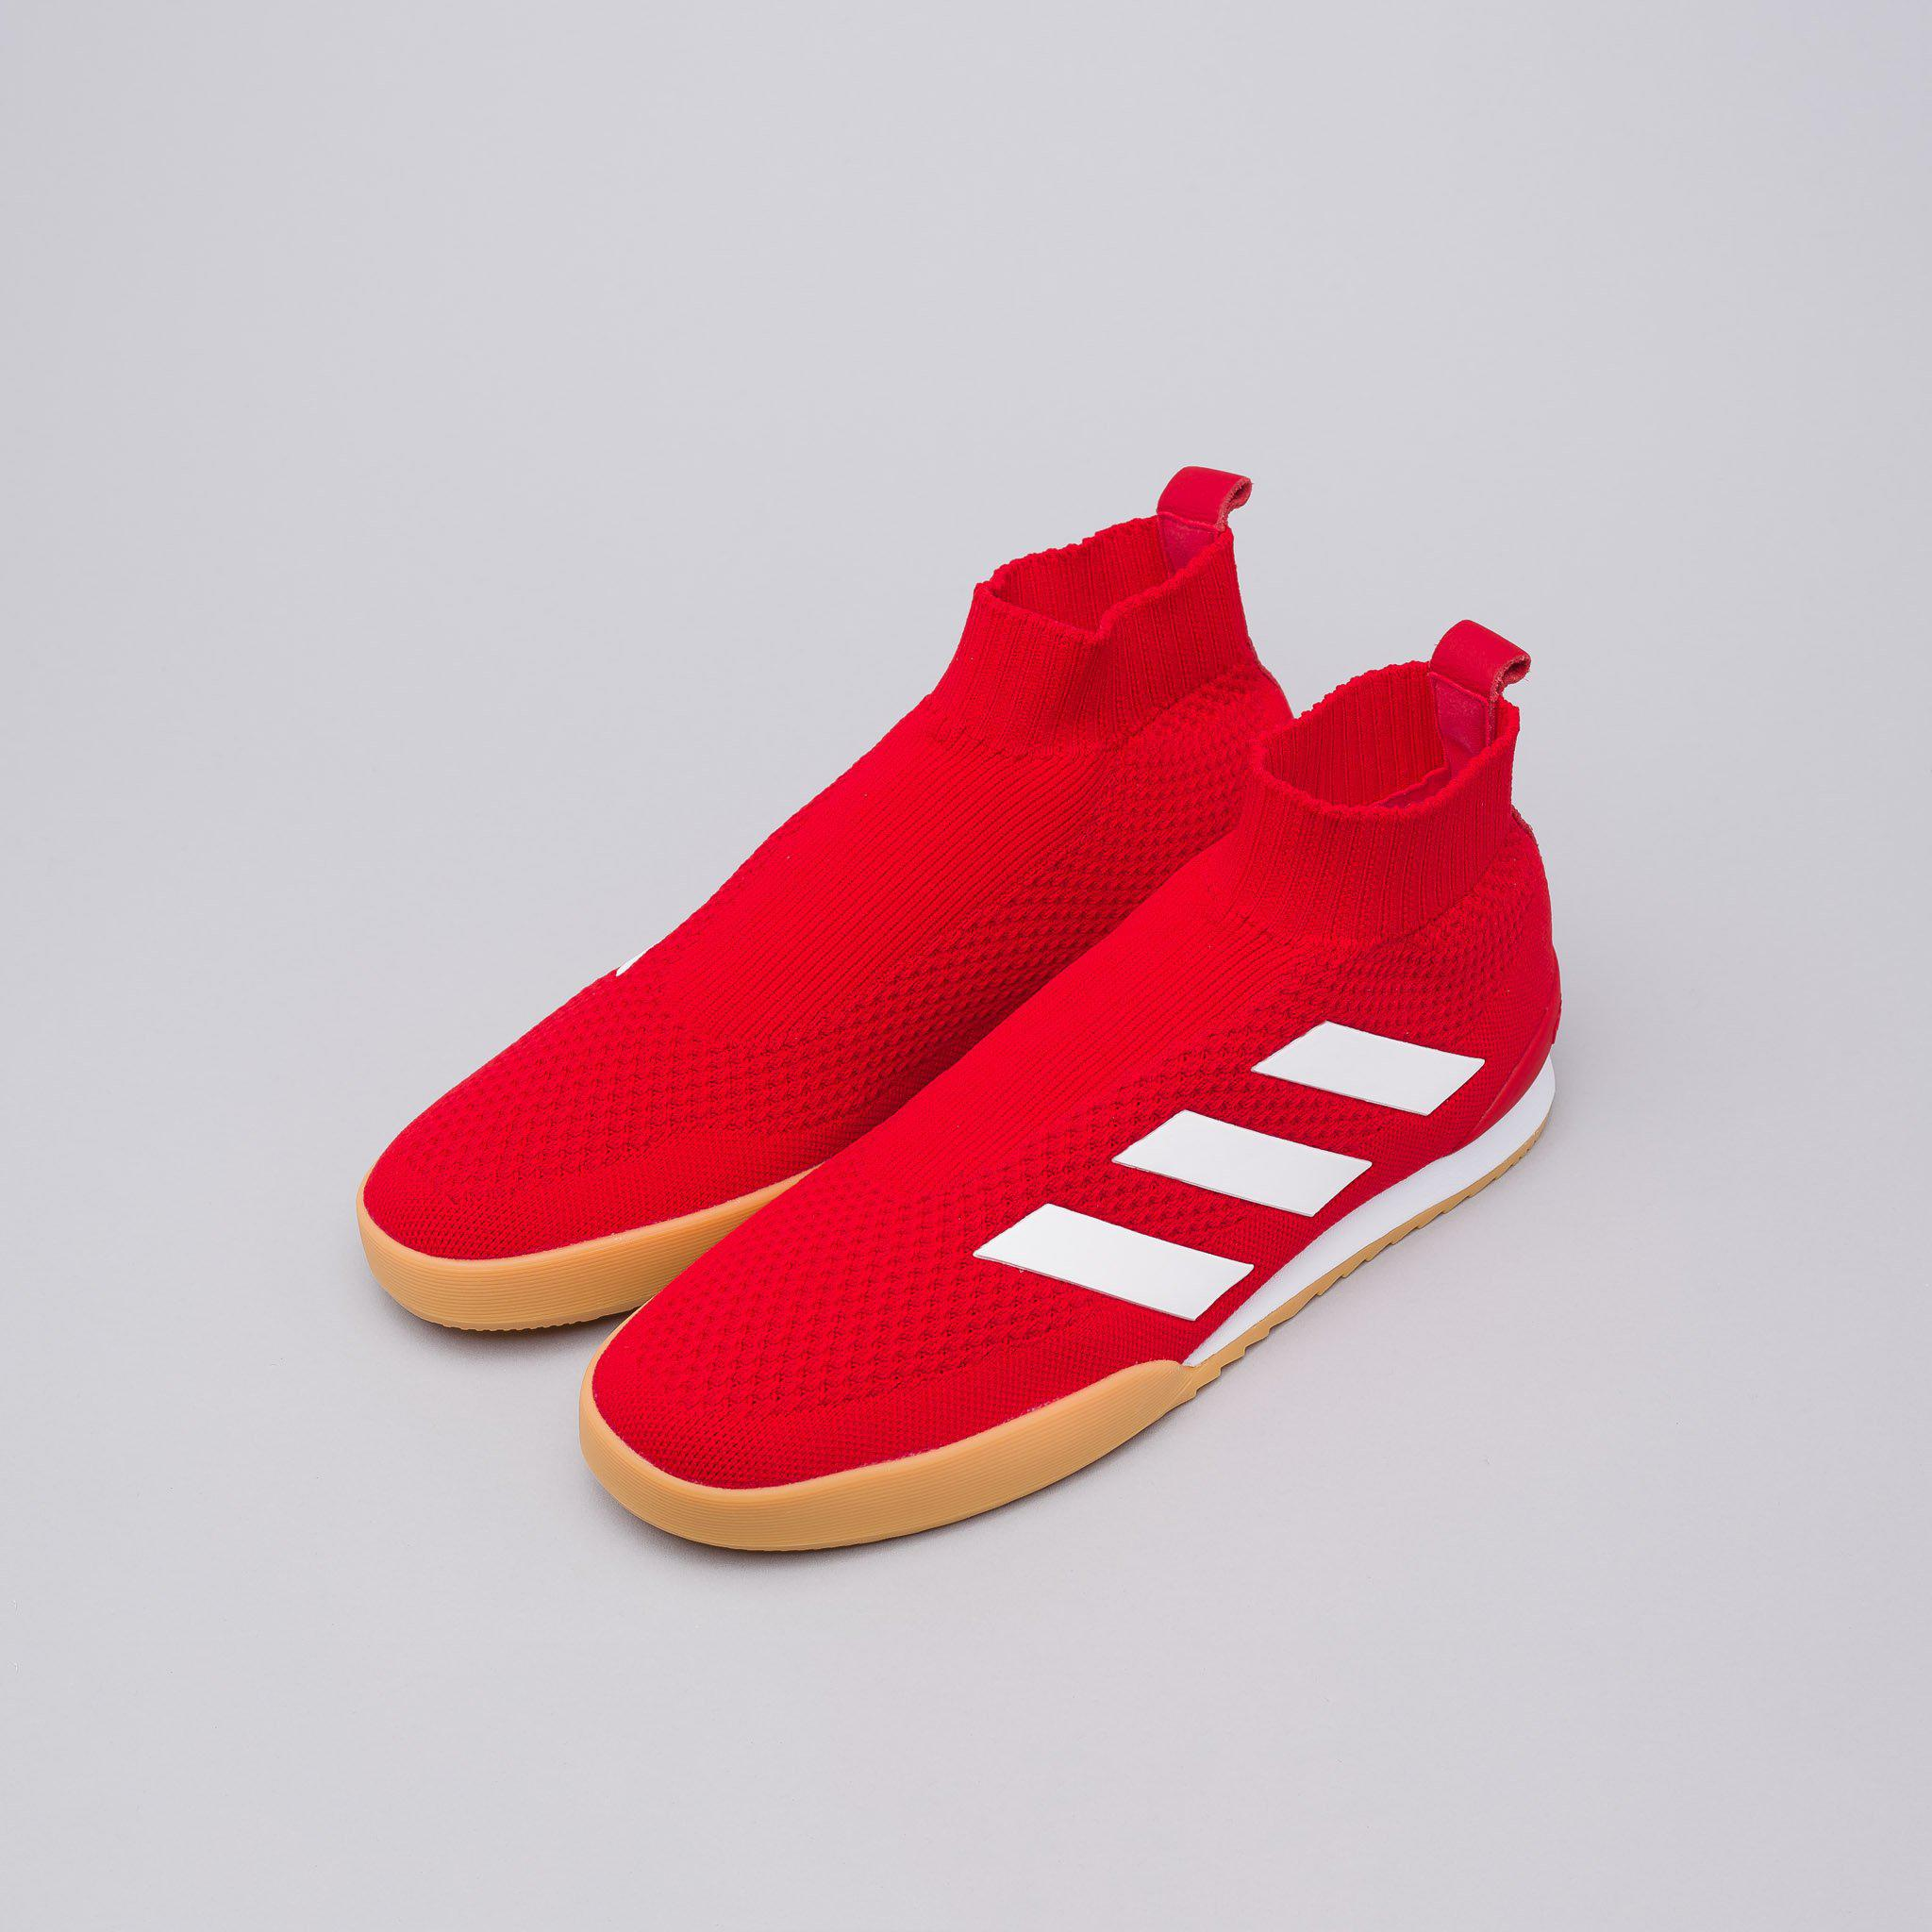 new style 300ee 731ac Lyst - Gosha Rubchinskiy X Adidas Ace Super Shoes In Red in